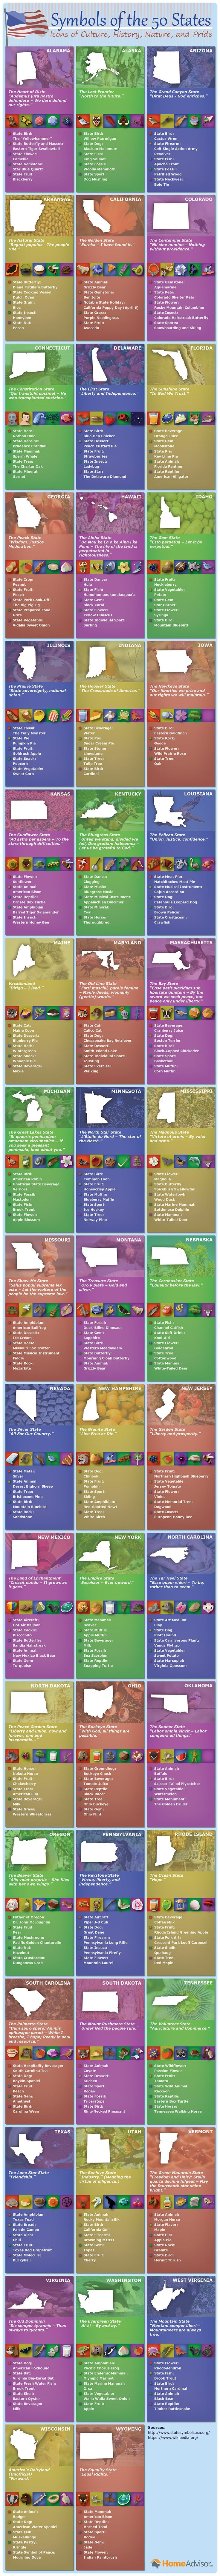 Symbols of the Fifty States: Icons of Culture, History, Nature, and Pride #Infographic #History #StateOfAmerica